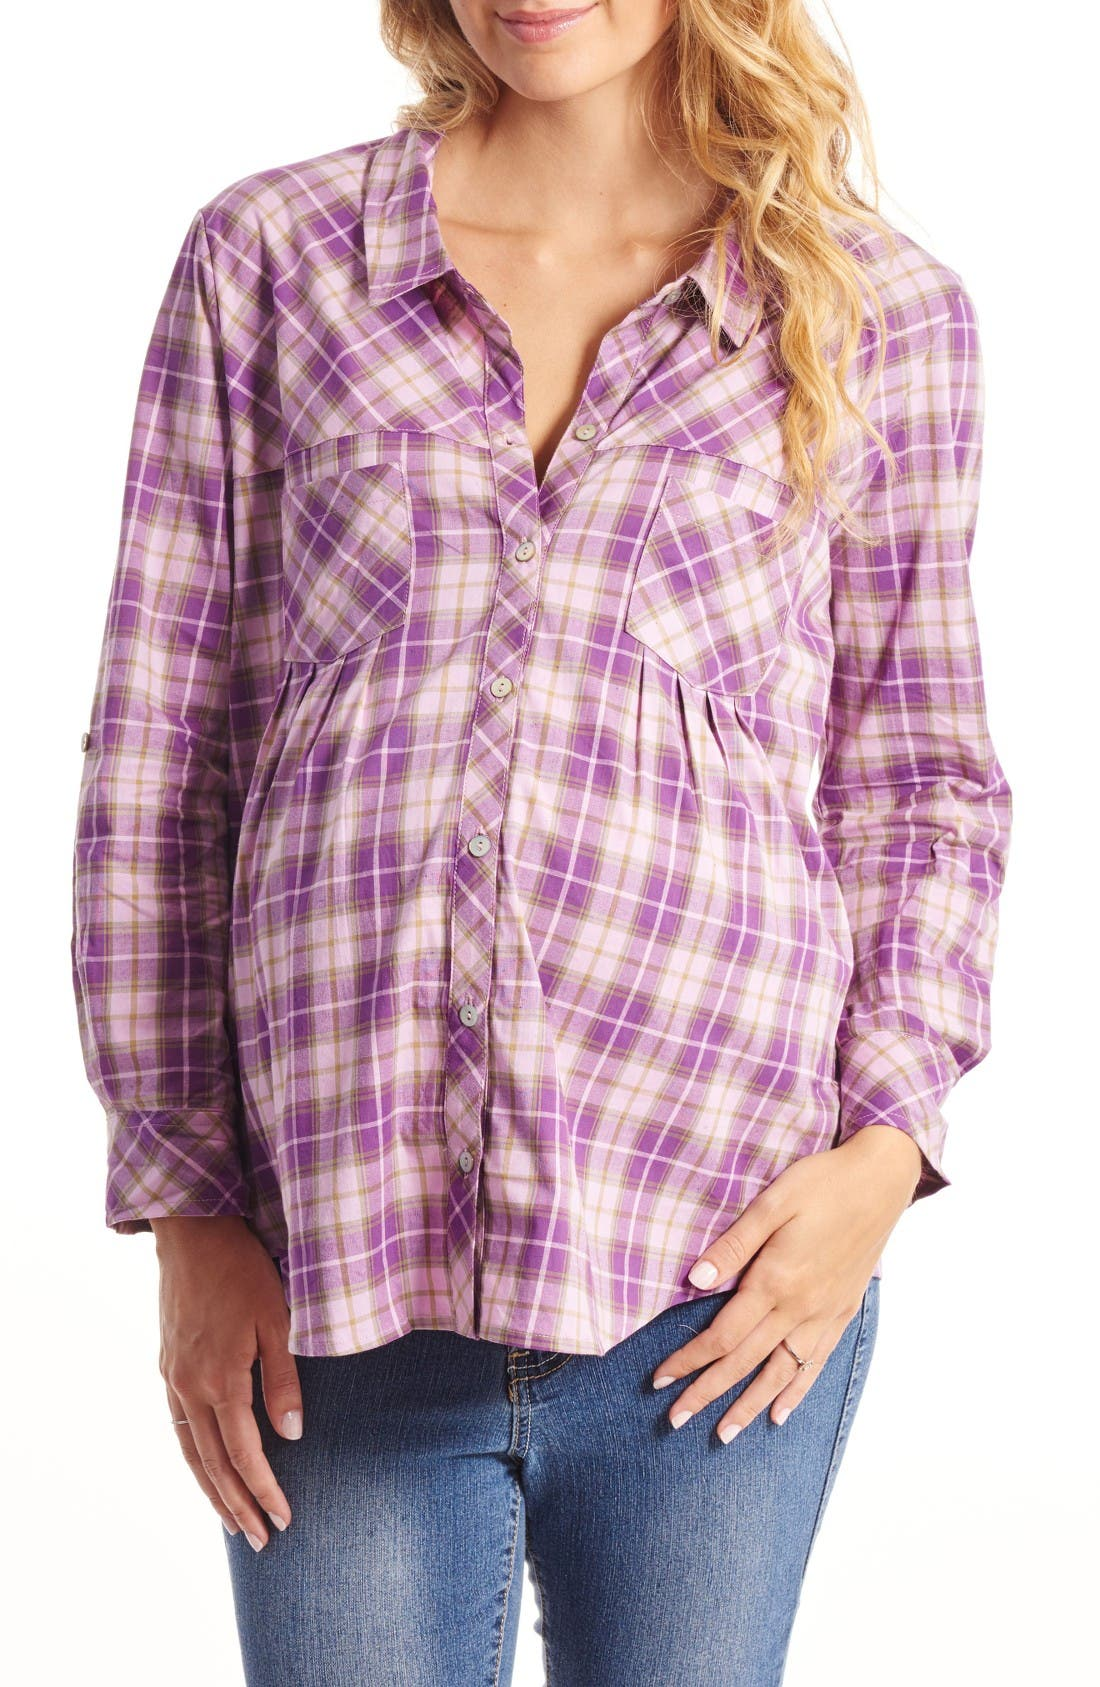 Everly Grey 'Batina' Maternity Shirt